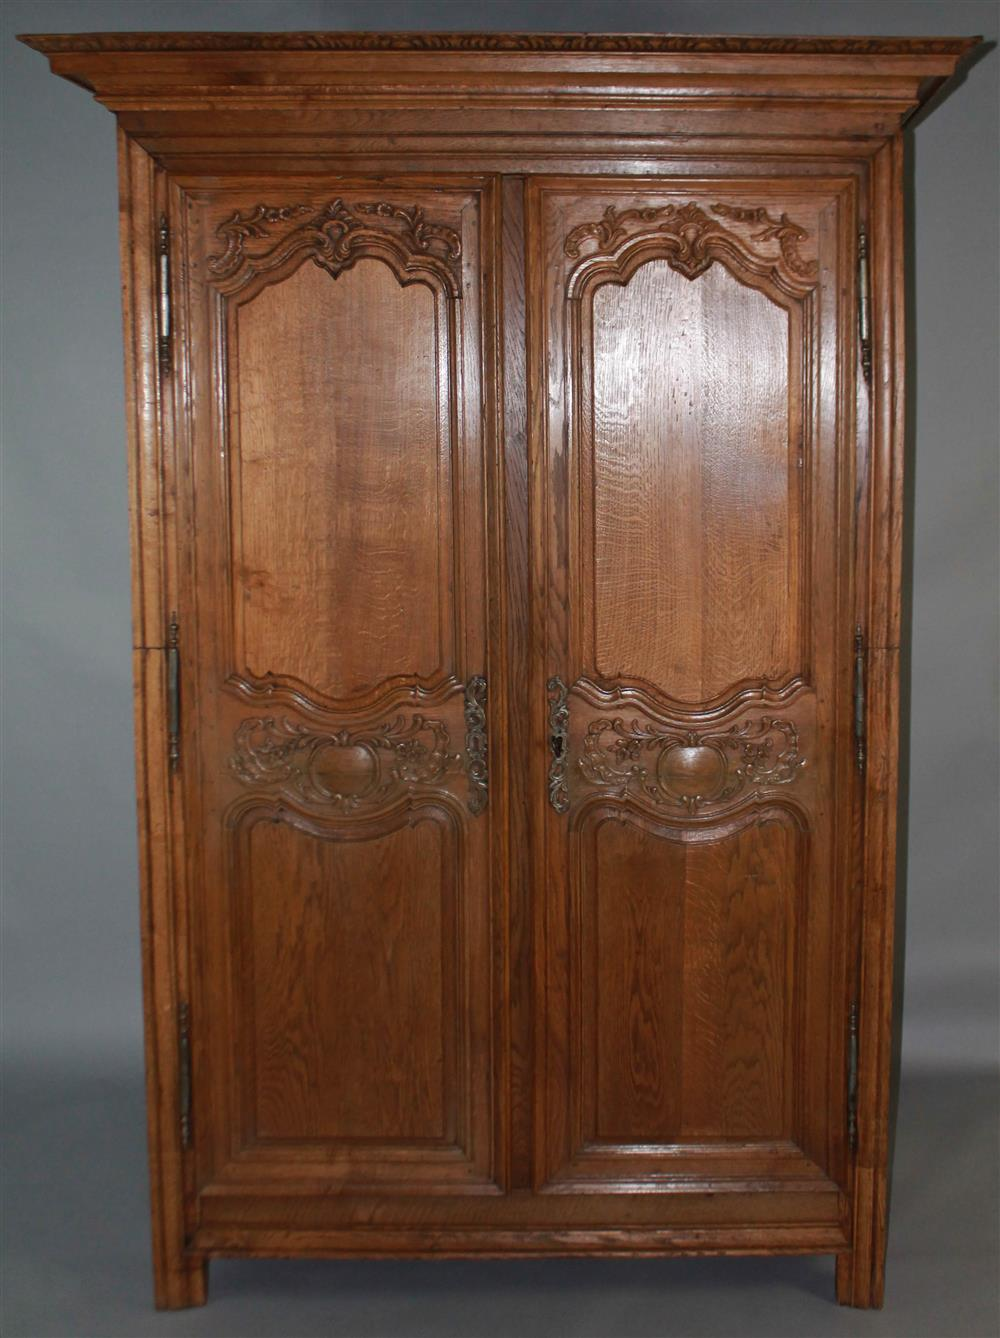 19TH C. FRENCH PROVINCIAL CARVED WALNUT ARMOIRE